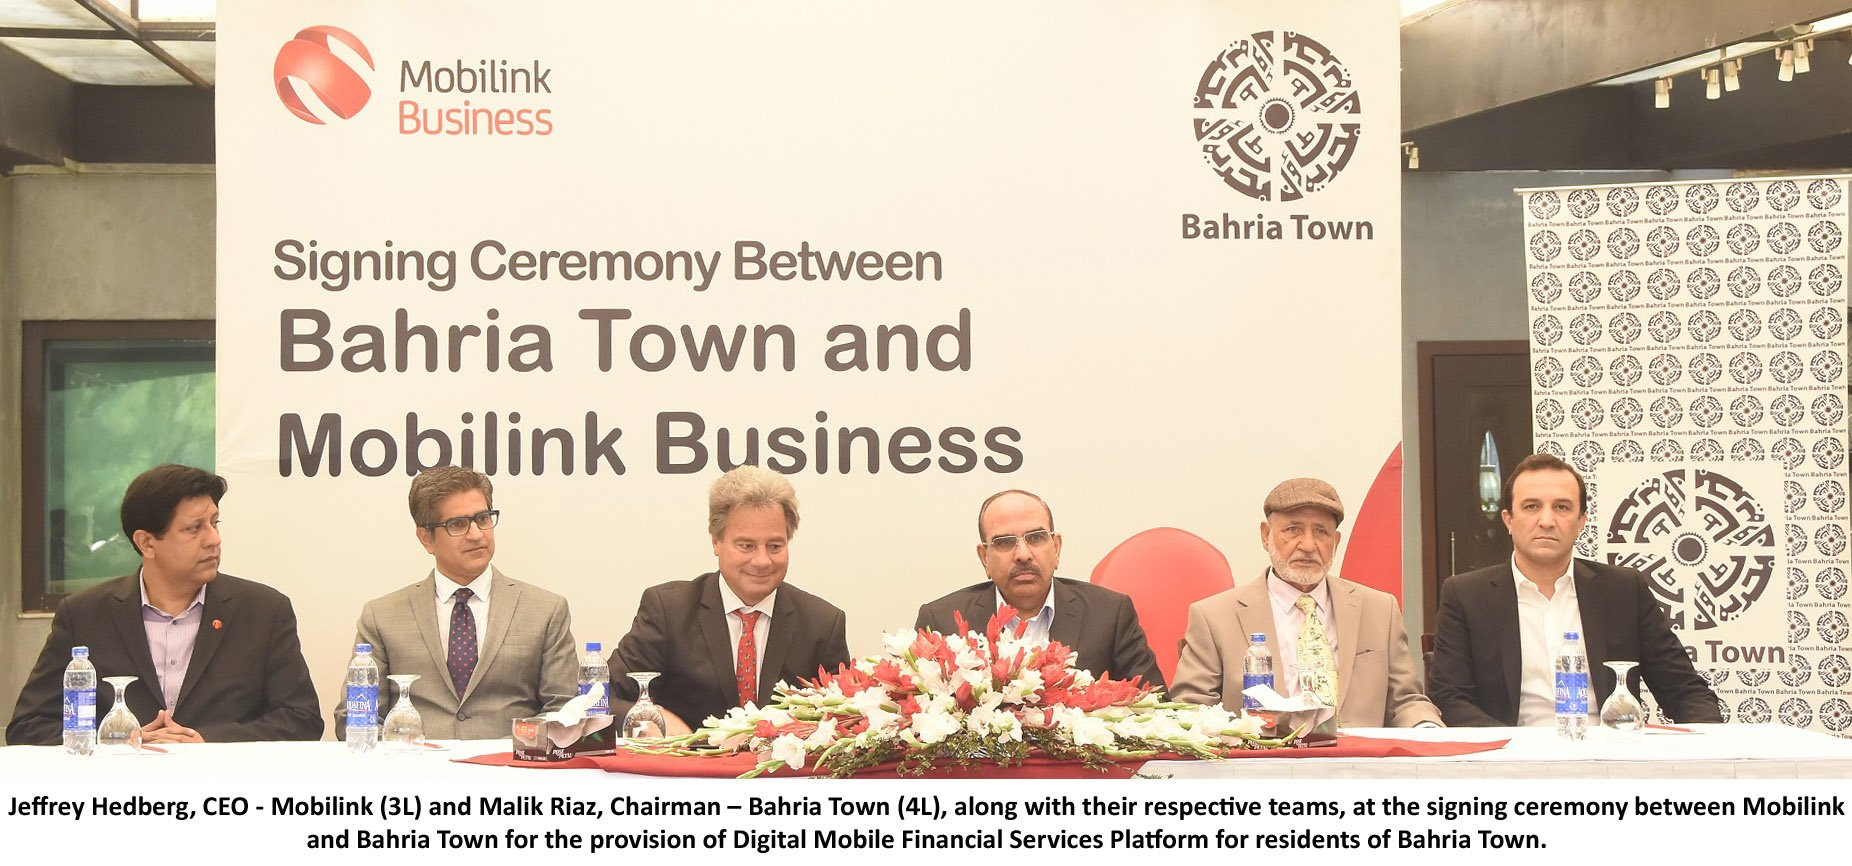 Mobilink goes Digital with Bahria Town - Digital 'Exceleration'